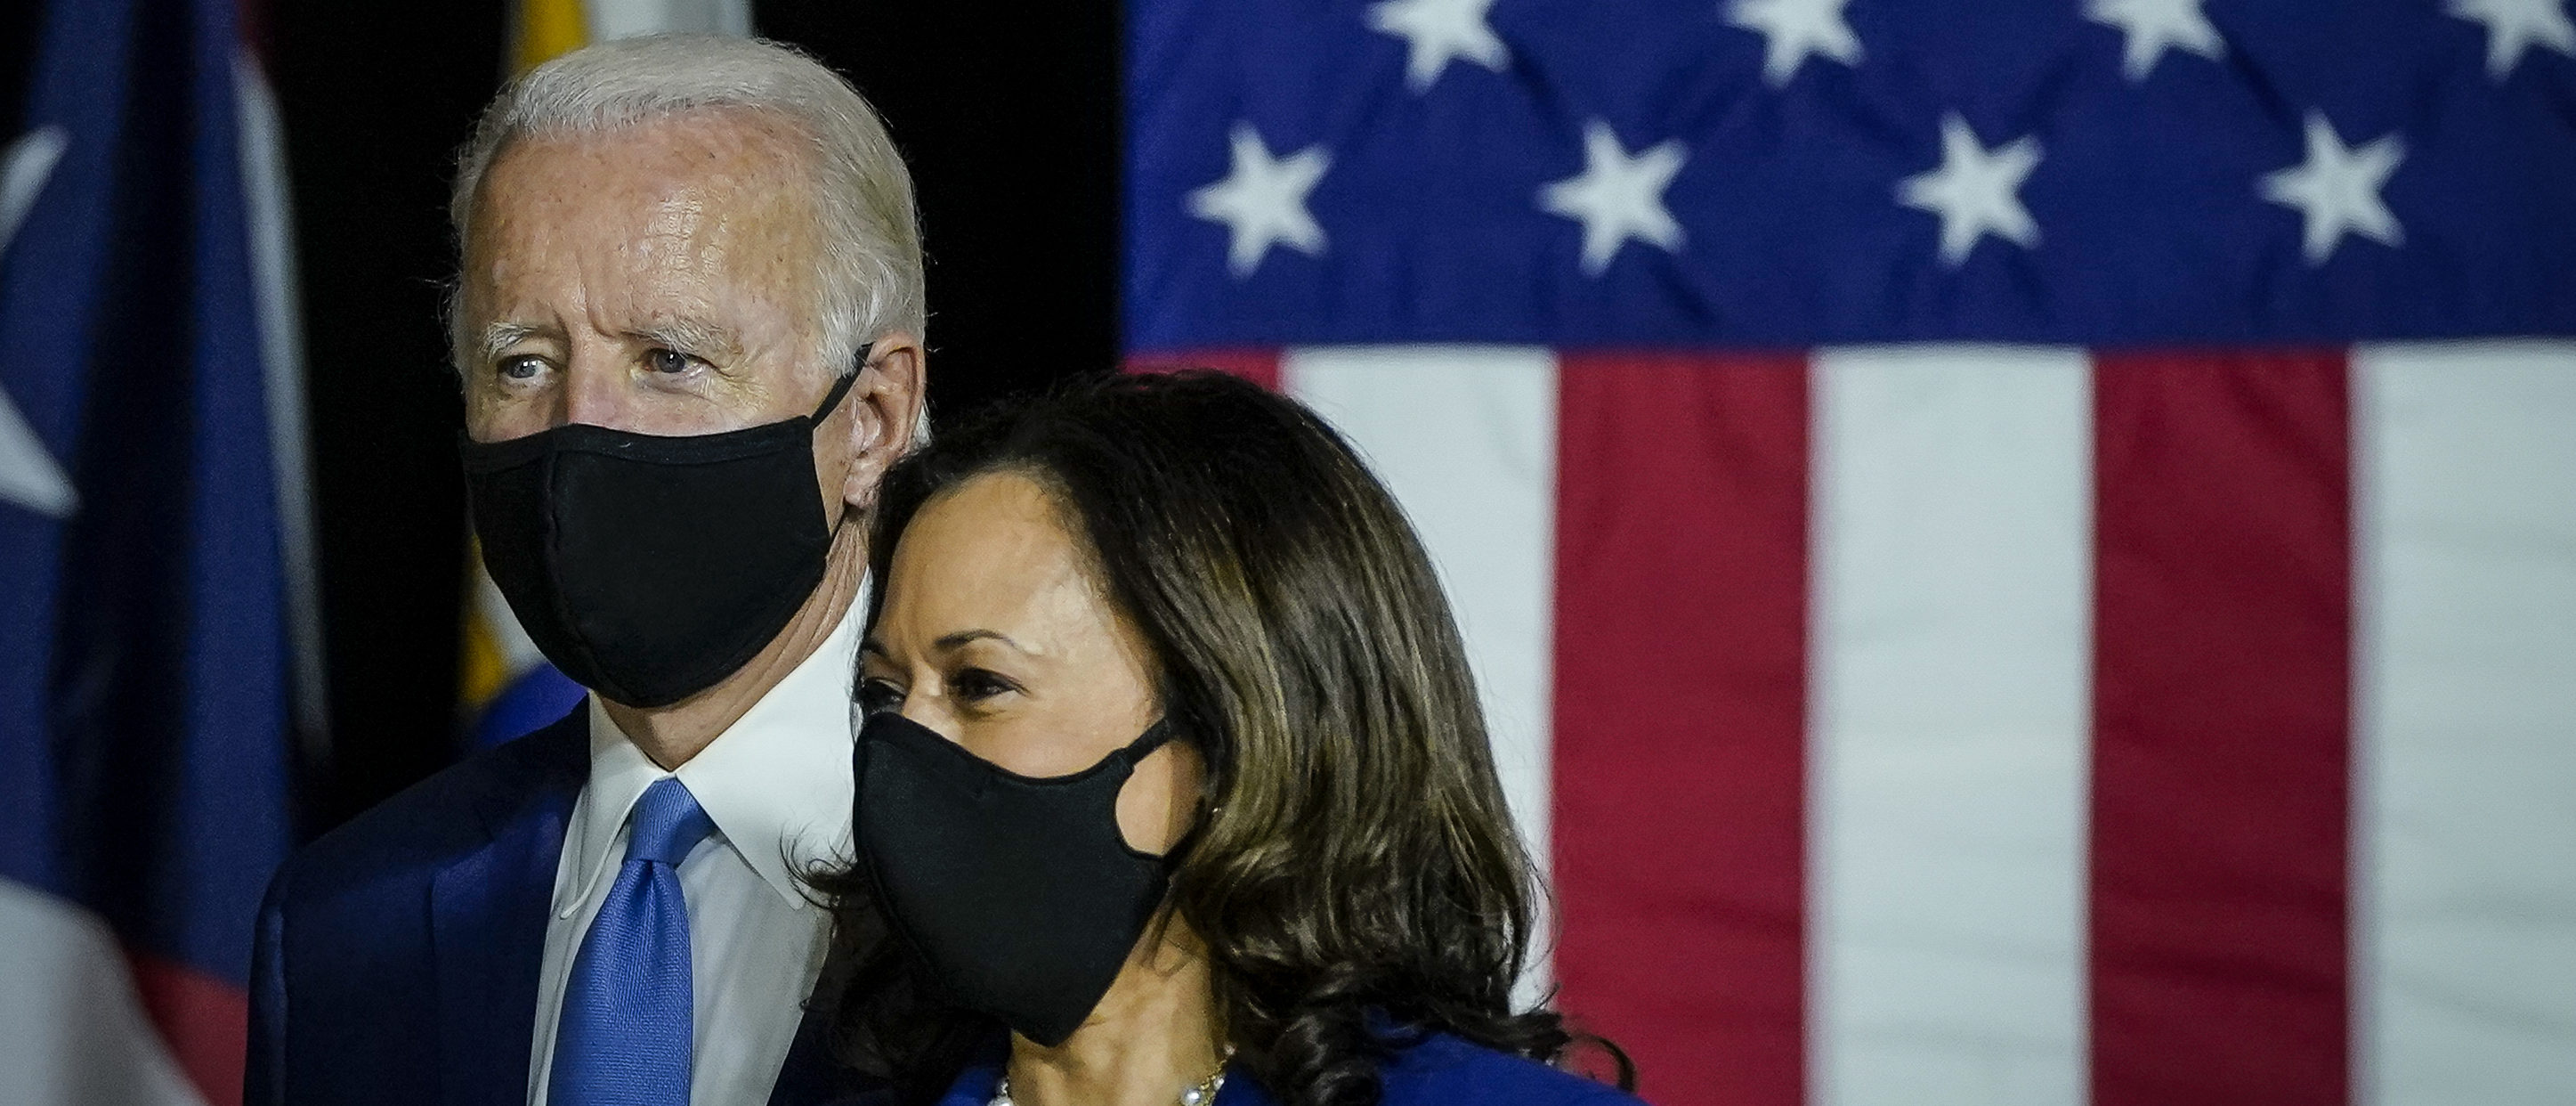 Democratic presidential candidate former Vice President Joe Biden and his running mate Sen. Kamala Harris (D-CA) arrive to deliver remarks at the Alexis Dupont High School on August 12, 2020 in Wilmington, Delaware. (Drew Angerer/Getty Images)